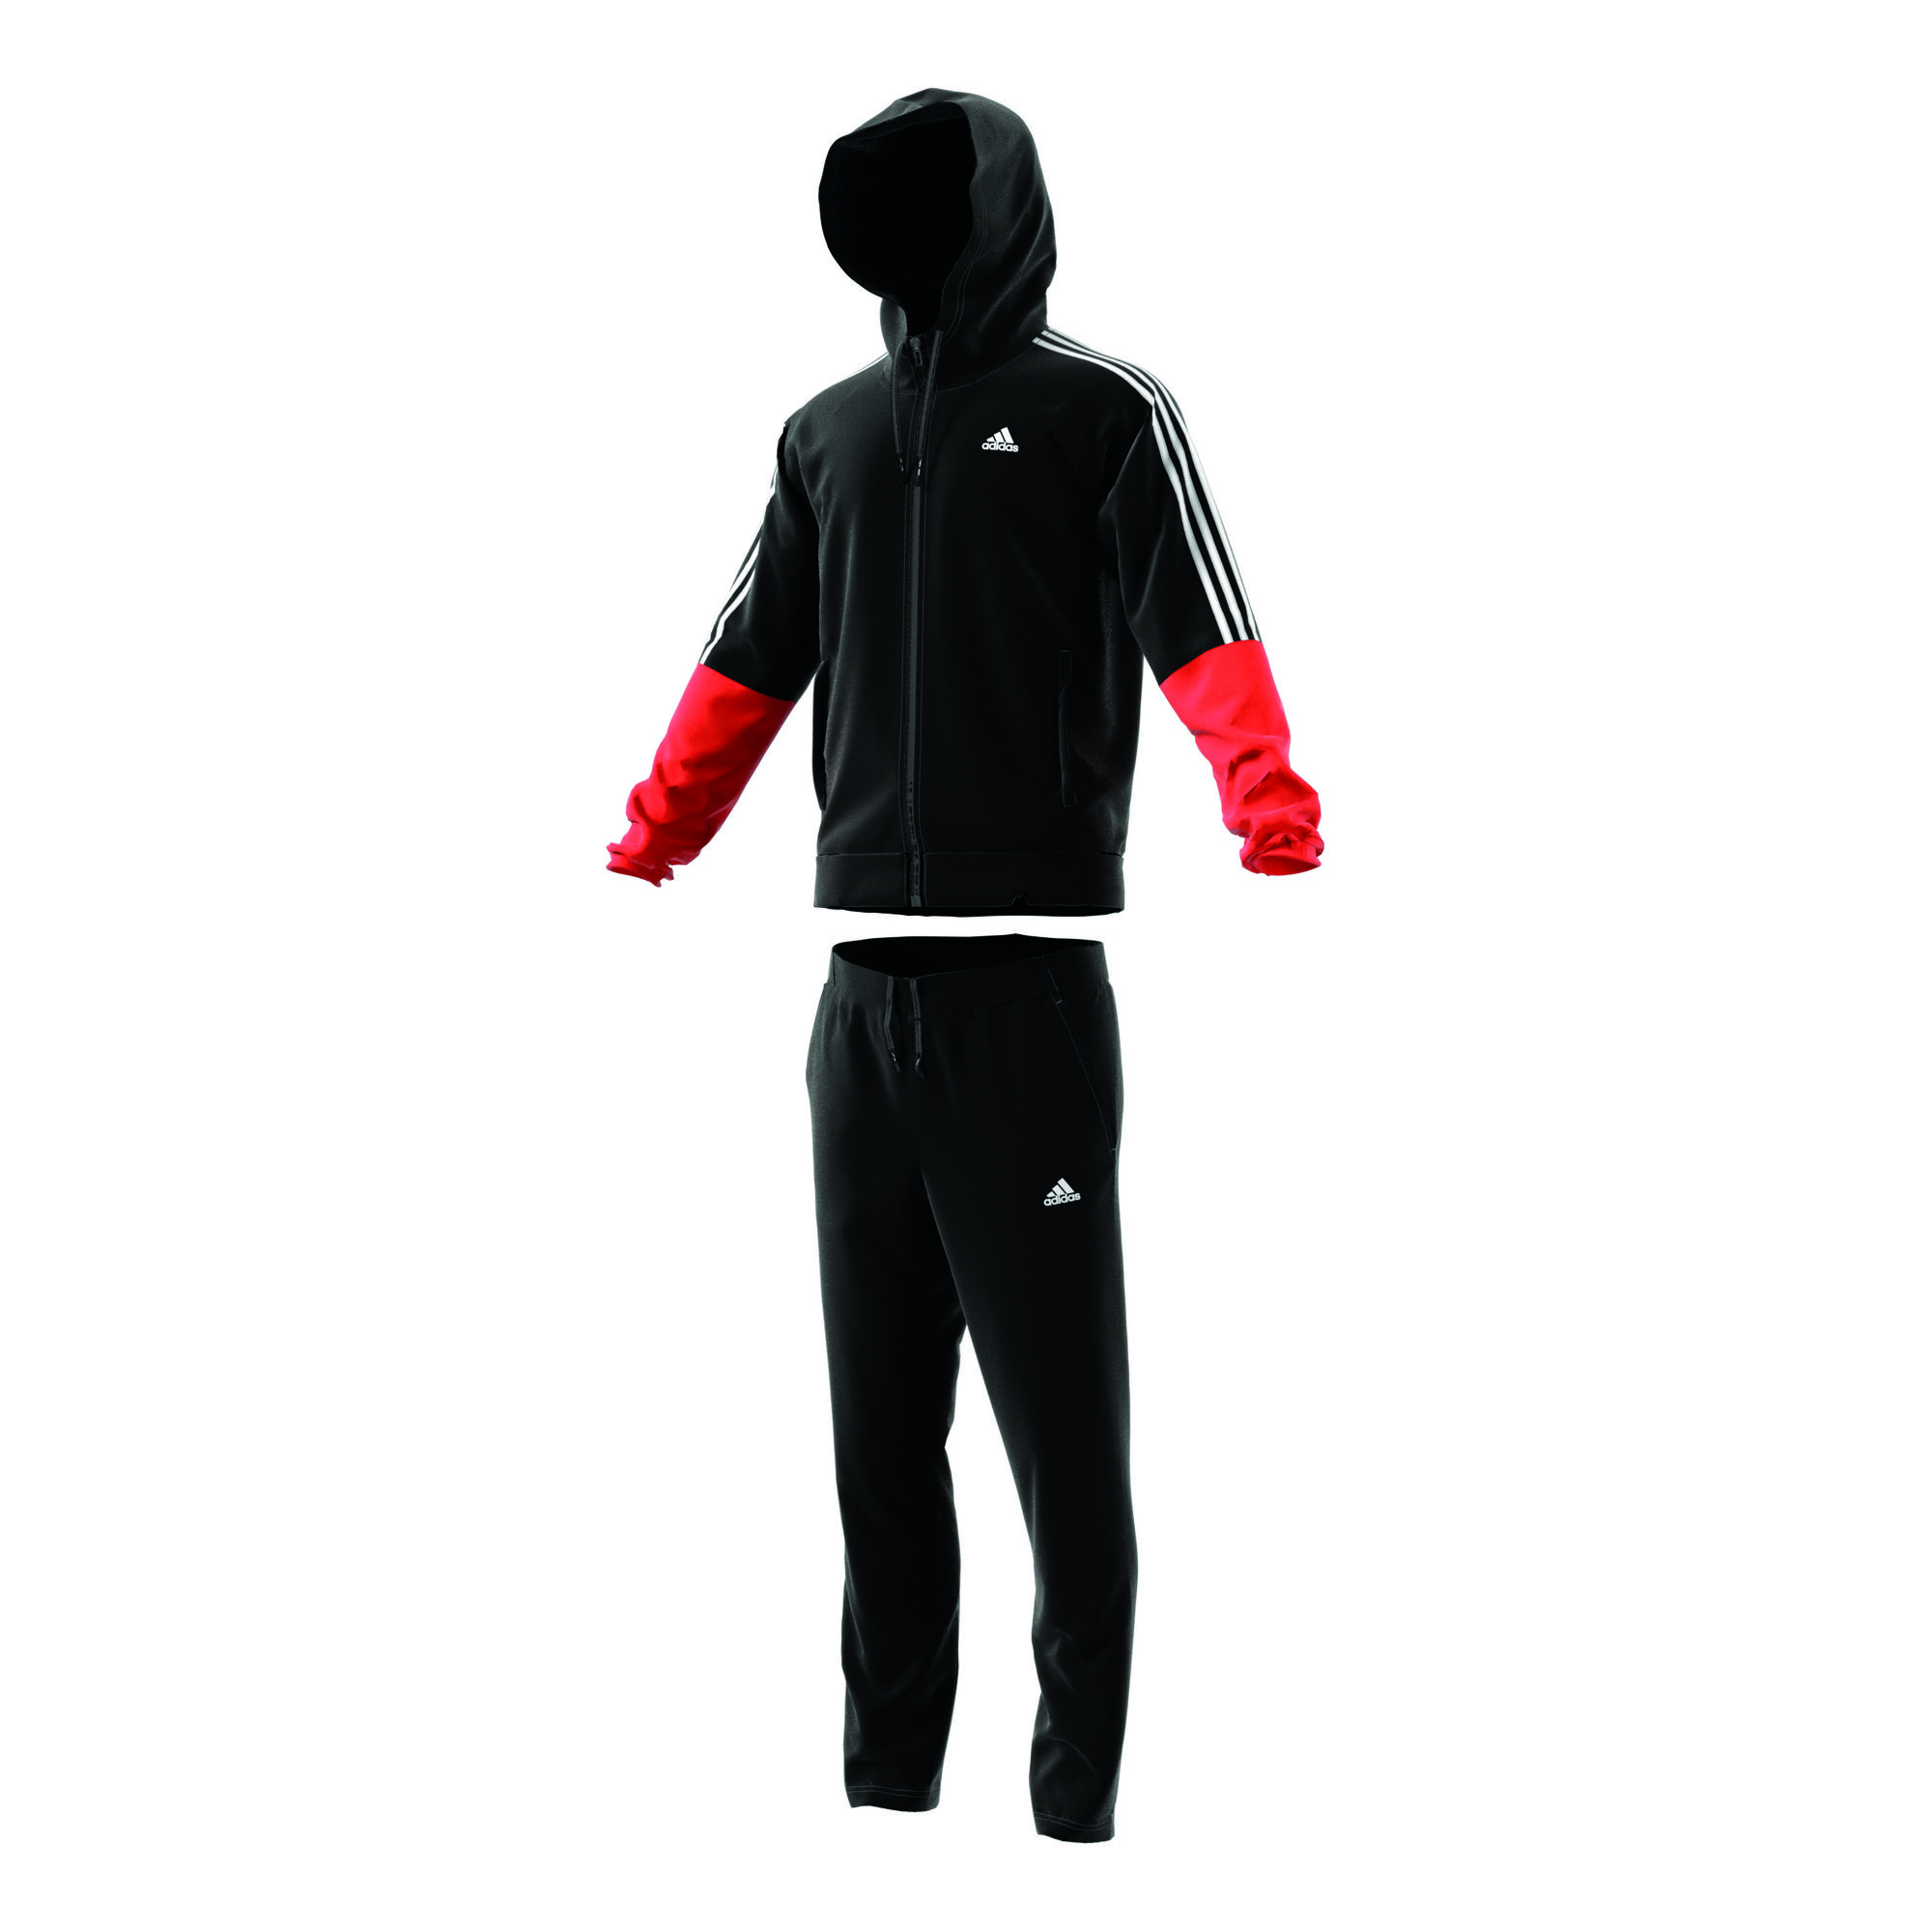 cfd57f05343 buy adidas Re-Focus Tracksuit Men - Black, Red online | Jogging-Point